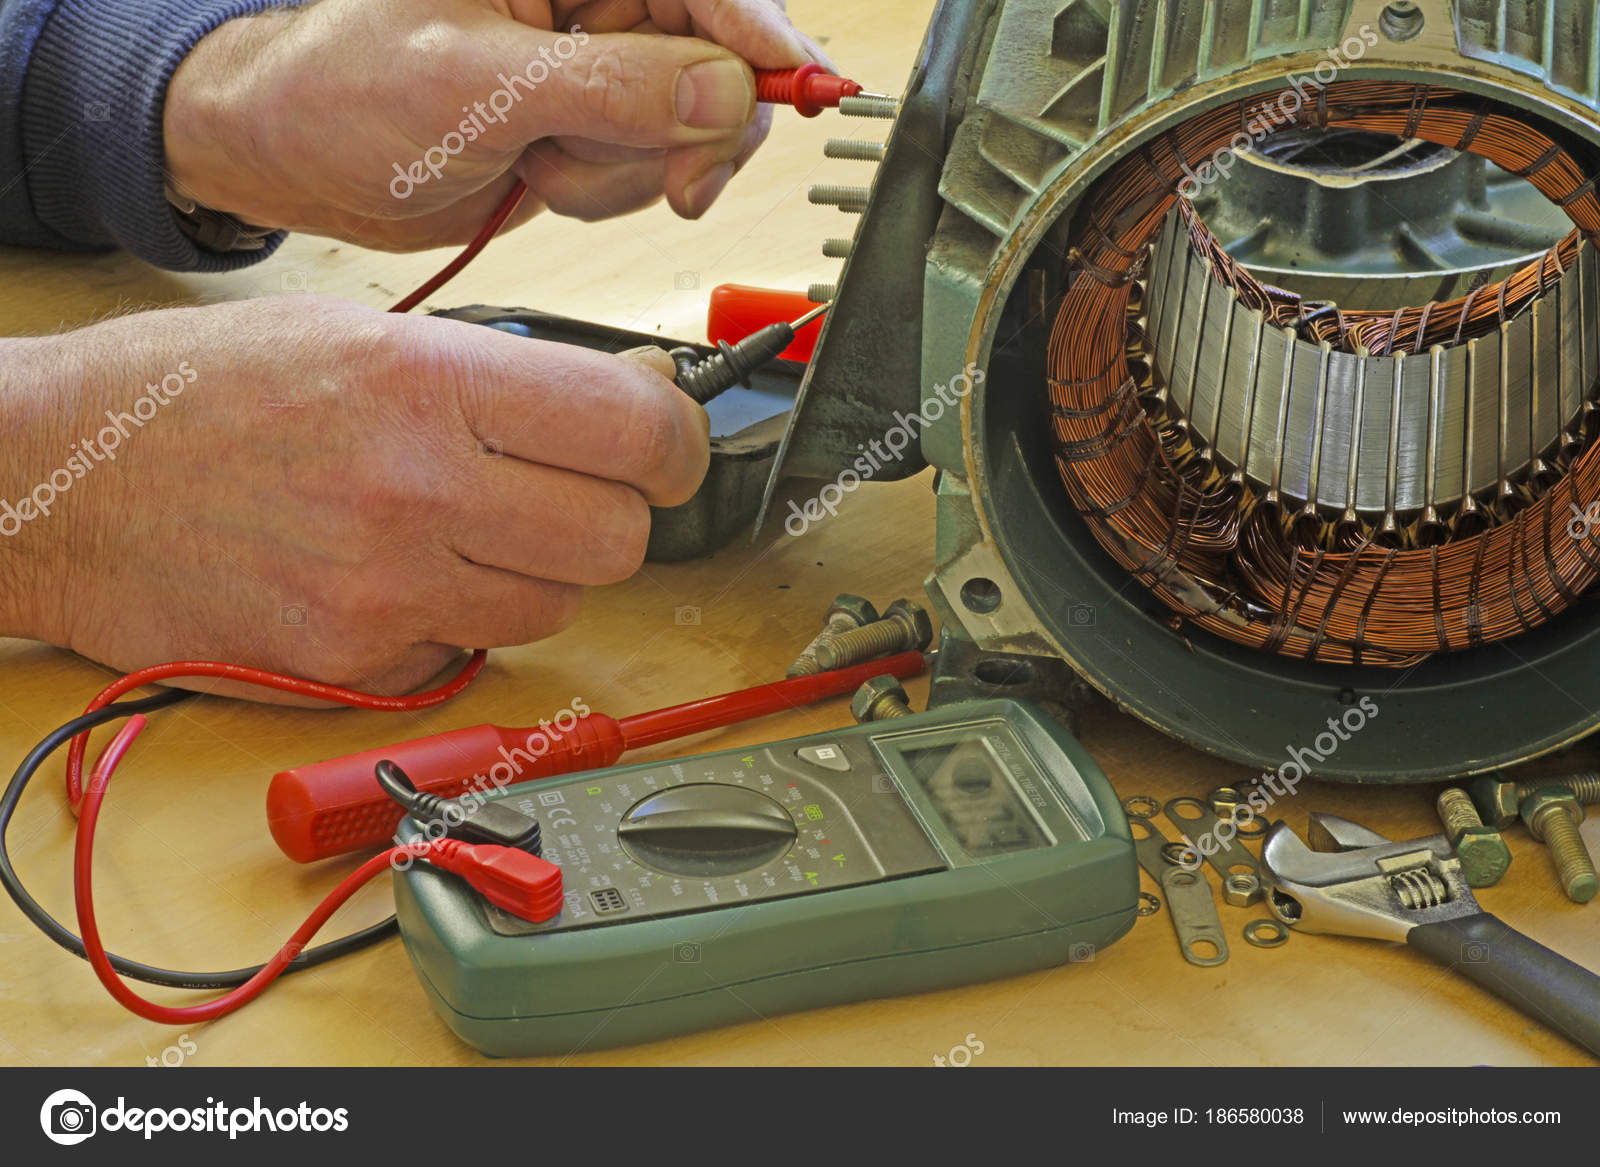 How to check the motor winding resistance 4k wiki for How to check 3 phase motor